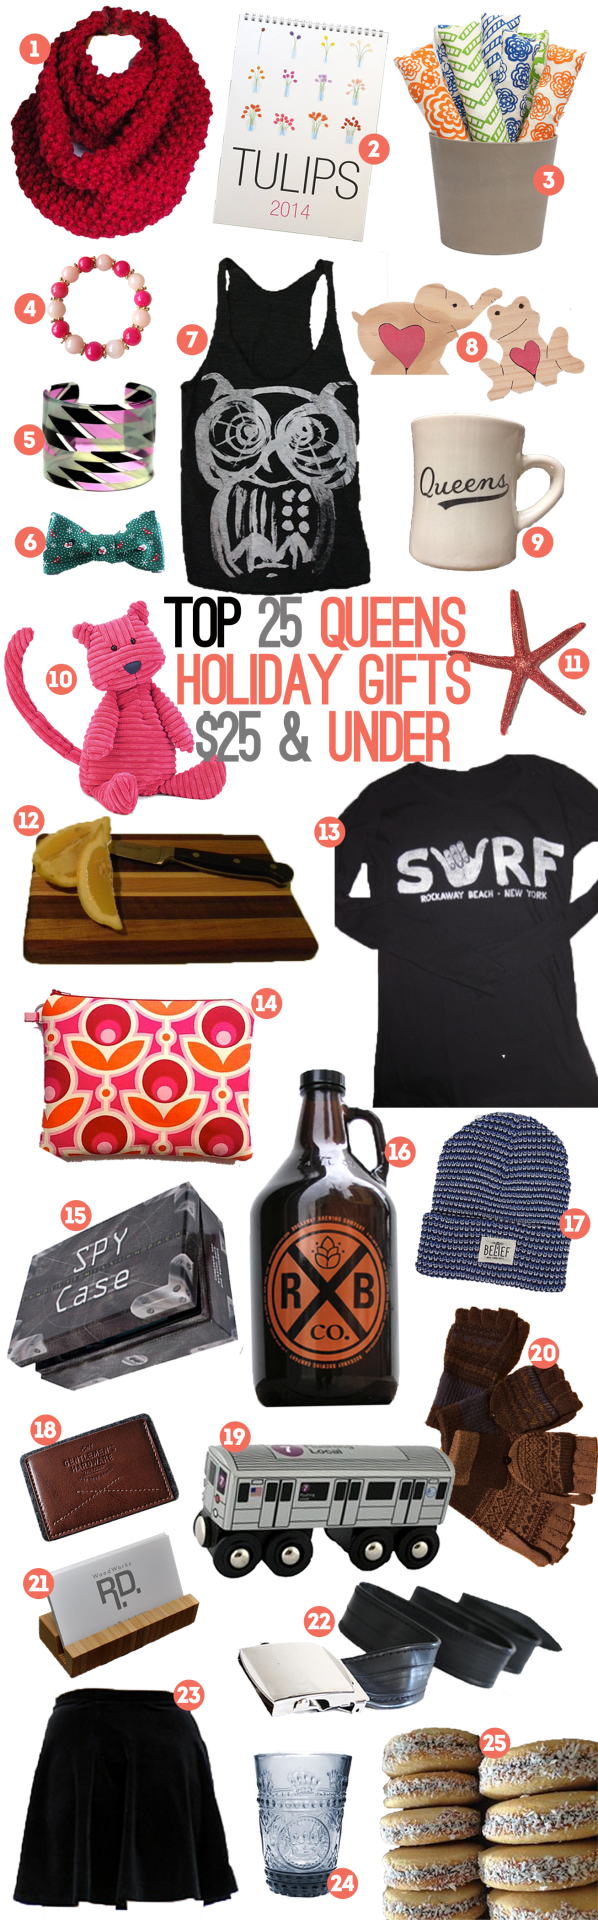 A round-up of our Top 25 Queens Holiday Gifts $25 and Under: Design for You Infinity Scarf - $22 Buy online here. 2014 Wall Calendar - $20 by TuxPress in Bayside. Catnip Sticks - $16 by kitty jones LIC-based store on Etsy. Pink Jade Hudson & Stella Bracelet - $25 Made by an LIC local, you can buy on Etsy or at tiny-you at either the Sunnyside or LIC locations. Lisa August Jade Cuff - $25 Made in Woodside but you can buy at Lockwood Shop in Astoria (map). Snowman Bowtie - $25 (perfect for that ugly sweater party!) by knotco, an Astoria-based store on Etsy. HOO THAT Tank - $25 from queens77.  My new favorite tank which is screen printed by hand.  Buy online or at LIC Flea this Sunday, Dec. 22nd 11am-6pm (map). Wooden Heart Treasure Animals - $4.75/each from Slovak-Czech Varieties in LIC, right across the street from tiny-you.  Lots of other animals and wooden toys handmade by the owner! (map) Native Roasters Queens Diner Mug - $12 Buy on its own or in a coffee gift set at Lockwood Shop in Astoria (map). Jellycat Plush Cordy Roy Pink Cat - $18 Buy at tiny-you at either the Sunnyside or LIC shop location.  They also have really cute kids clothes and accessories (two Queens locations). Glitter Starfish Clip - $7 from Fancy Things by Nancy in Rockaway. Cheese Board/Cutting Board - $26 from The Cutting Board Project.  Ok, so it's $1 over $25 but it's definitely worth it for the hand-crafted cutting boards from the makers of the Urban City Bike Shelves. Rockaway Surf Shop Long Sleeve Tee- $22.95 Rockaway Beach Surf Shop has all of your surfing needs — and some great Rockaway Beach gear even for non-surfers! Closed Mondays (map). iPad mini case cover - $22 by toteallaccessories, a Forest Hills-based store on Etsy. Spy Case (Complete Mission Pack) - $17 from the NY Hall of Science in Flushing Meadows Corona Park for your favorite aspiring scientist (map). Rockaway Brewing Co. Growler - $23 for beer and 64 oz. glass growler.  Buy at the Rockaway Brewing Company in LIC Friday-Sunday (map). Lighthouse Beanie - $20 from Belief in Astoria.  They're a skateshop but also have some really cool hoodies and winter gear (map). Gentlemen's Hardware Leather & Felt Credit Card Holder - $25 at Matted LIC (map). Wooden 7 Train (Flushing Local)- $13 Get your favorite train line (N,Q,7) for your favorite little one at Raising Astoria (map). Fingerless Gloves by the Nomad Truck - $22 Buy at LIC Flea this Sunday, Dec. 22nd 11am-6pm (map). Bamboo handmade business card holder - $23 by woodworksRD, a Corona-based shop on Etsy. Recycled Bike Tube Belt - $20 from Vaya Bags in Ridgewood (map). Velvet Skater Skirt - $22 from Diva New York.  Although the clothes are typically clubby, you can find some good, cheap pieces here if you look.  This skirt is perfect for New Year's with some tights and a sparkly top! (locations in Astoria, Jackson Heights, & Forest Hills). Louis Hi-Ball Glass - $10/each from LIC: living.  Stop in today, December 14th for 15% off storewide (map). Buenos Angies Argentinian Alfajores- $12 for holiday tin of 4 large coconut alfajores.